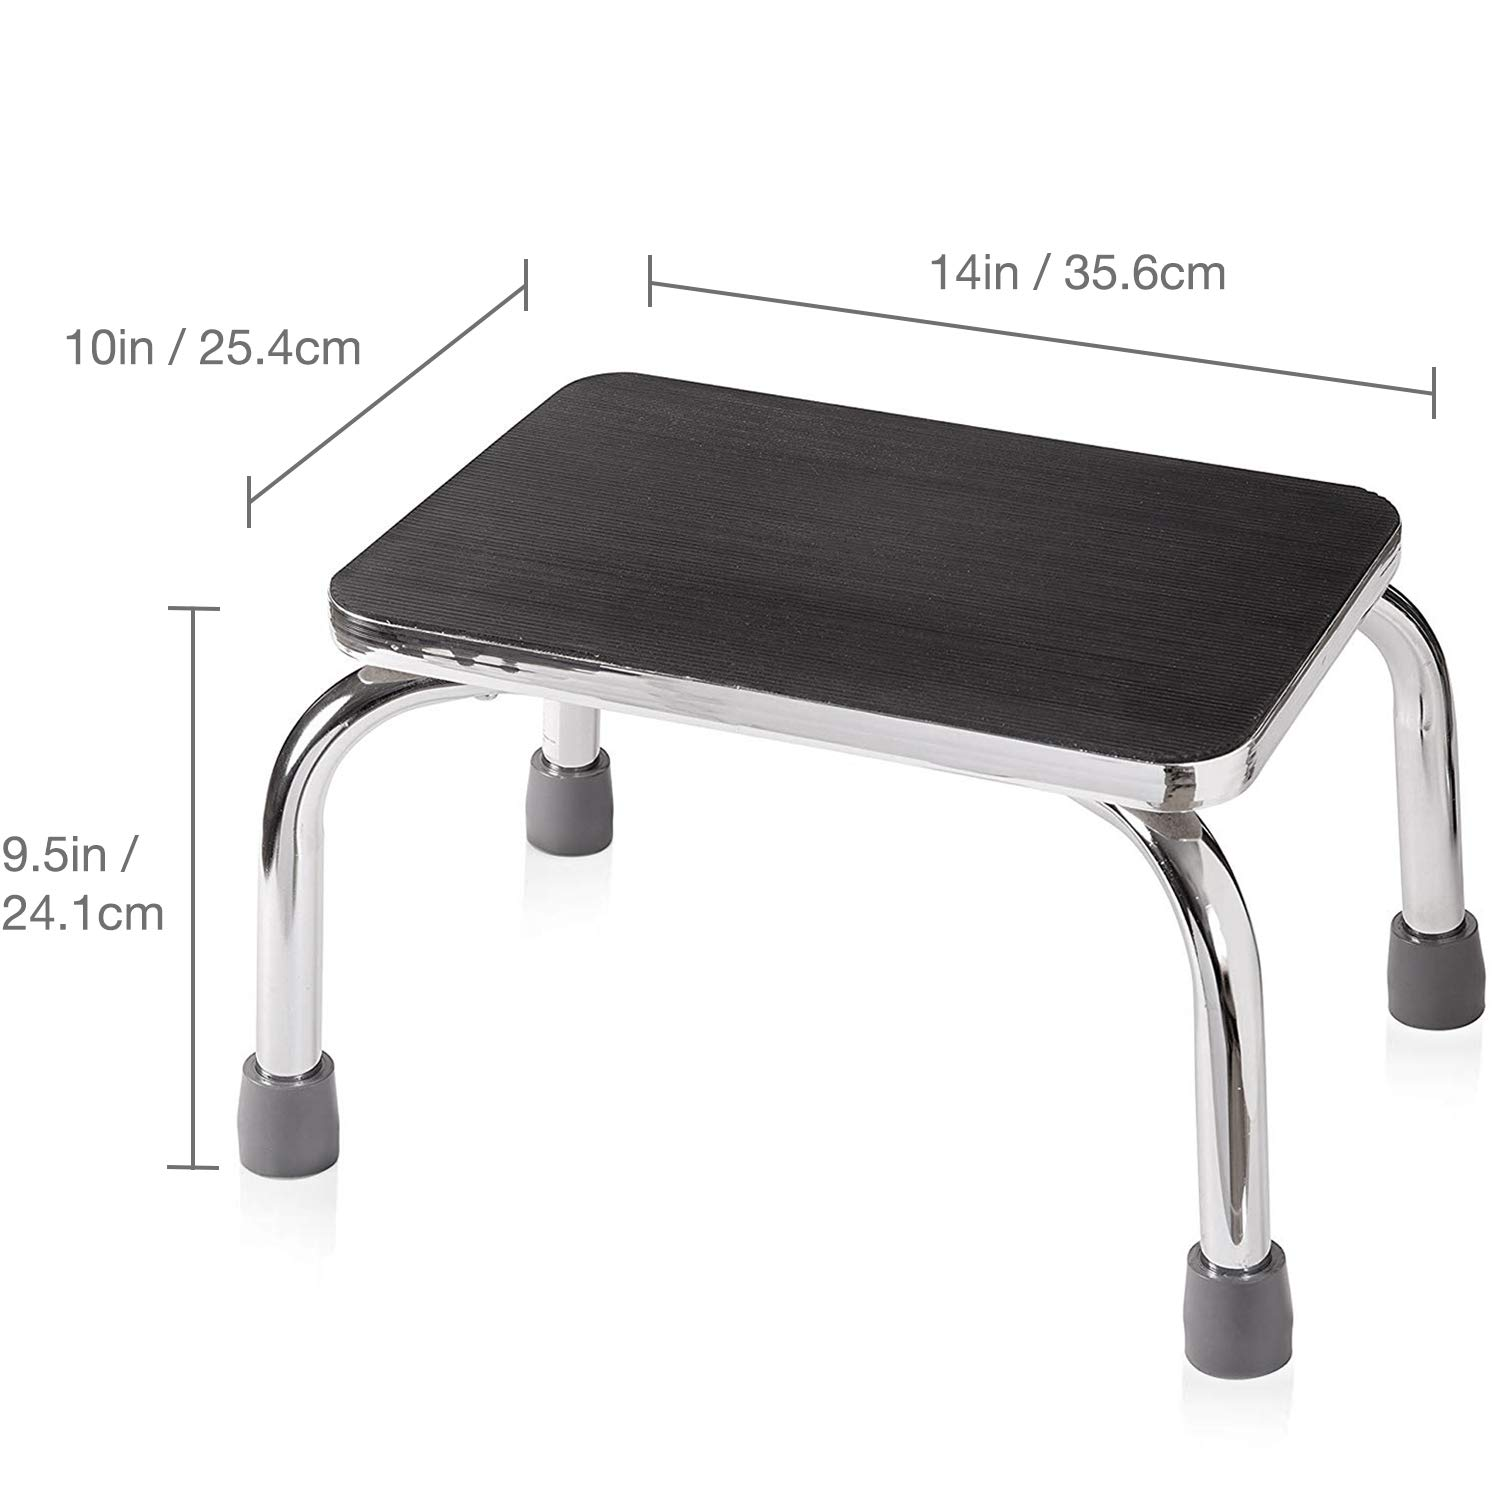 Fine Dmi Step Stool For Adults And Seniors Heavy Duty Metal Stepping Stool For High Beds Portable Foot Step Stool For Elderly 250 Lb Weight Capacity Ibusinesslaw Wood Chair Design Ideas Ibusinesslaworg